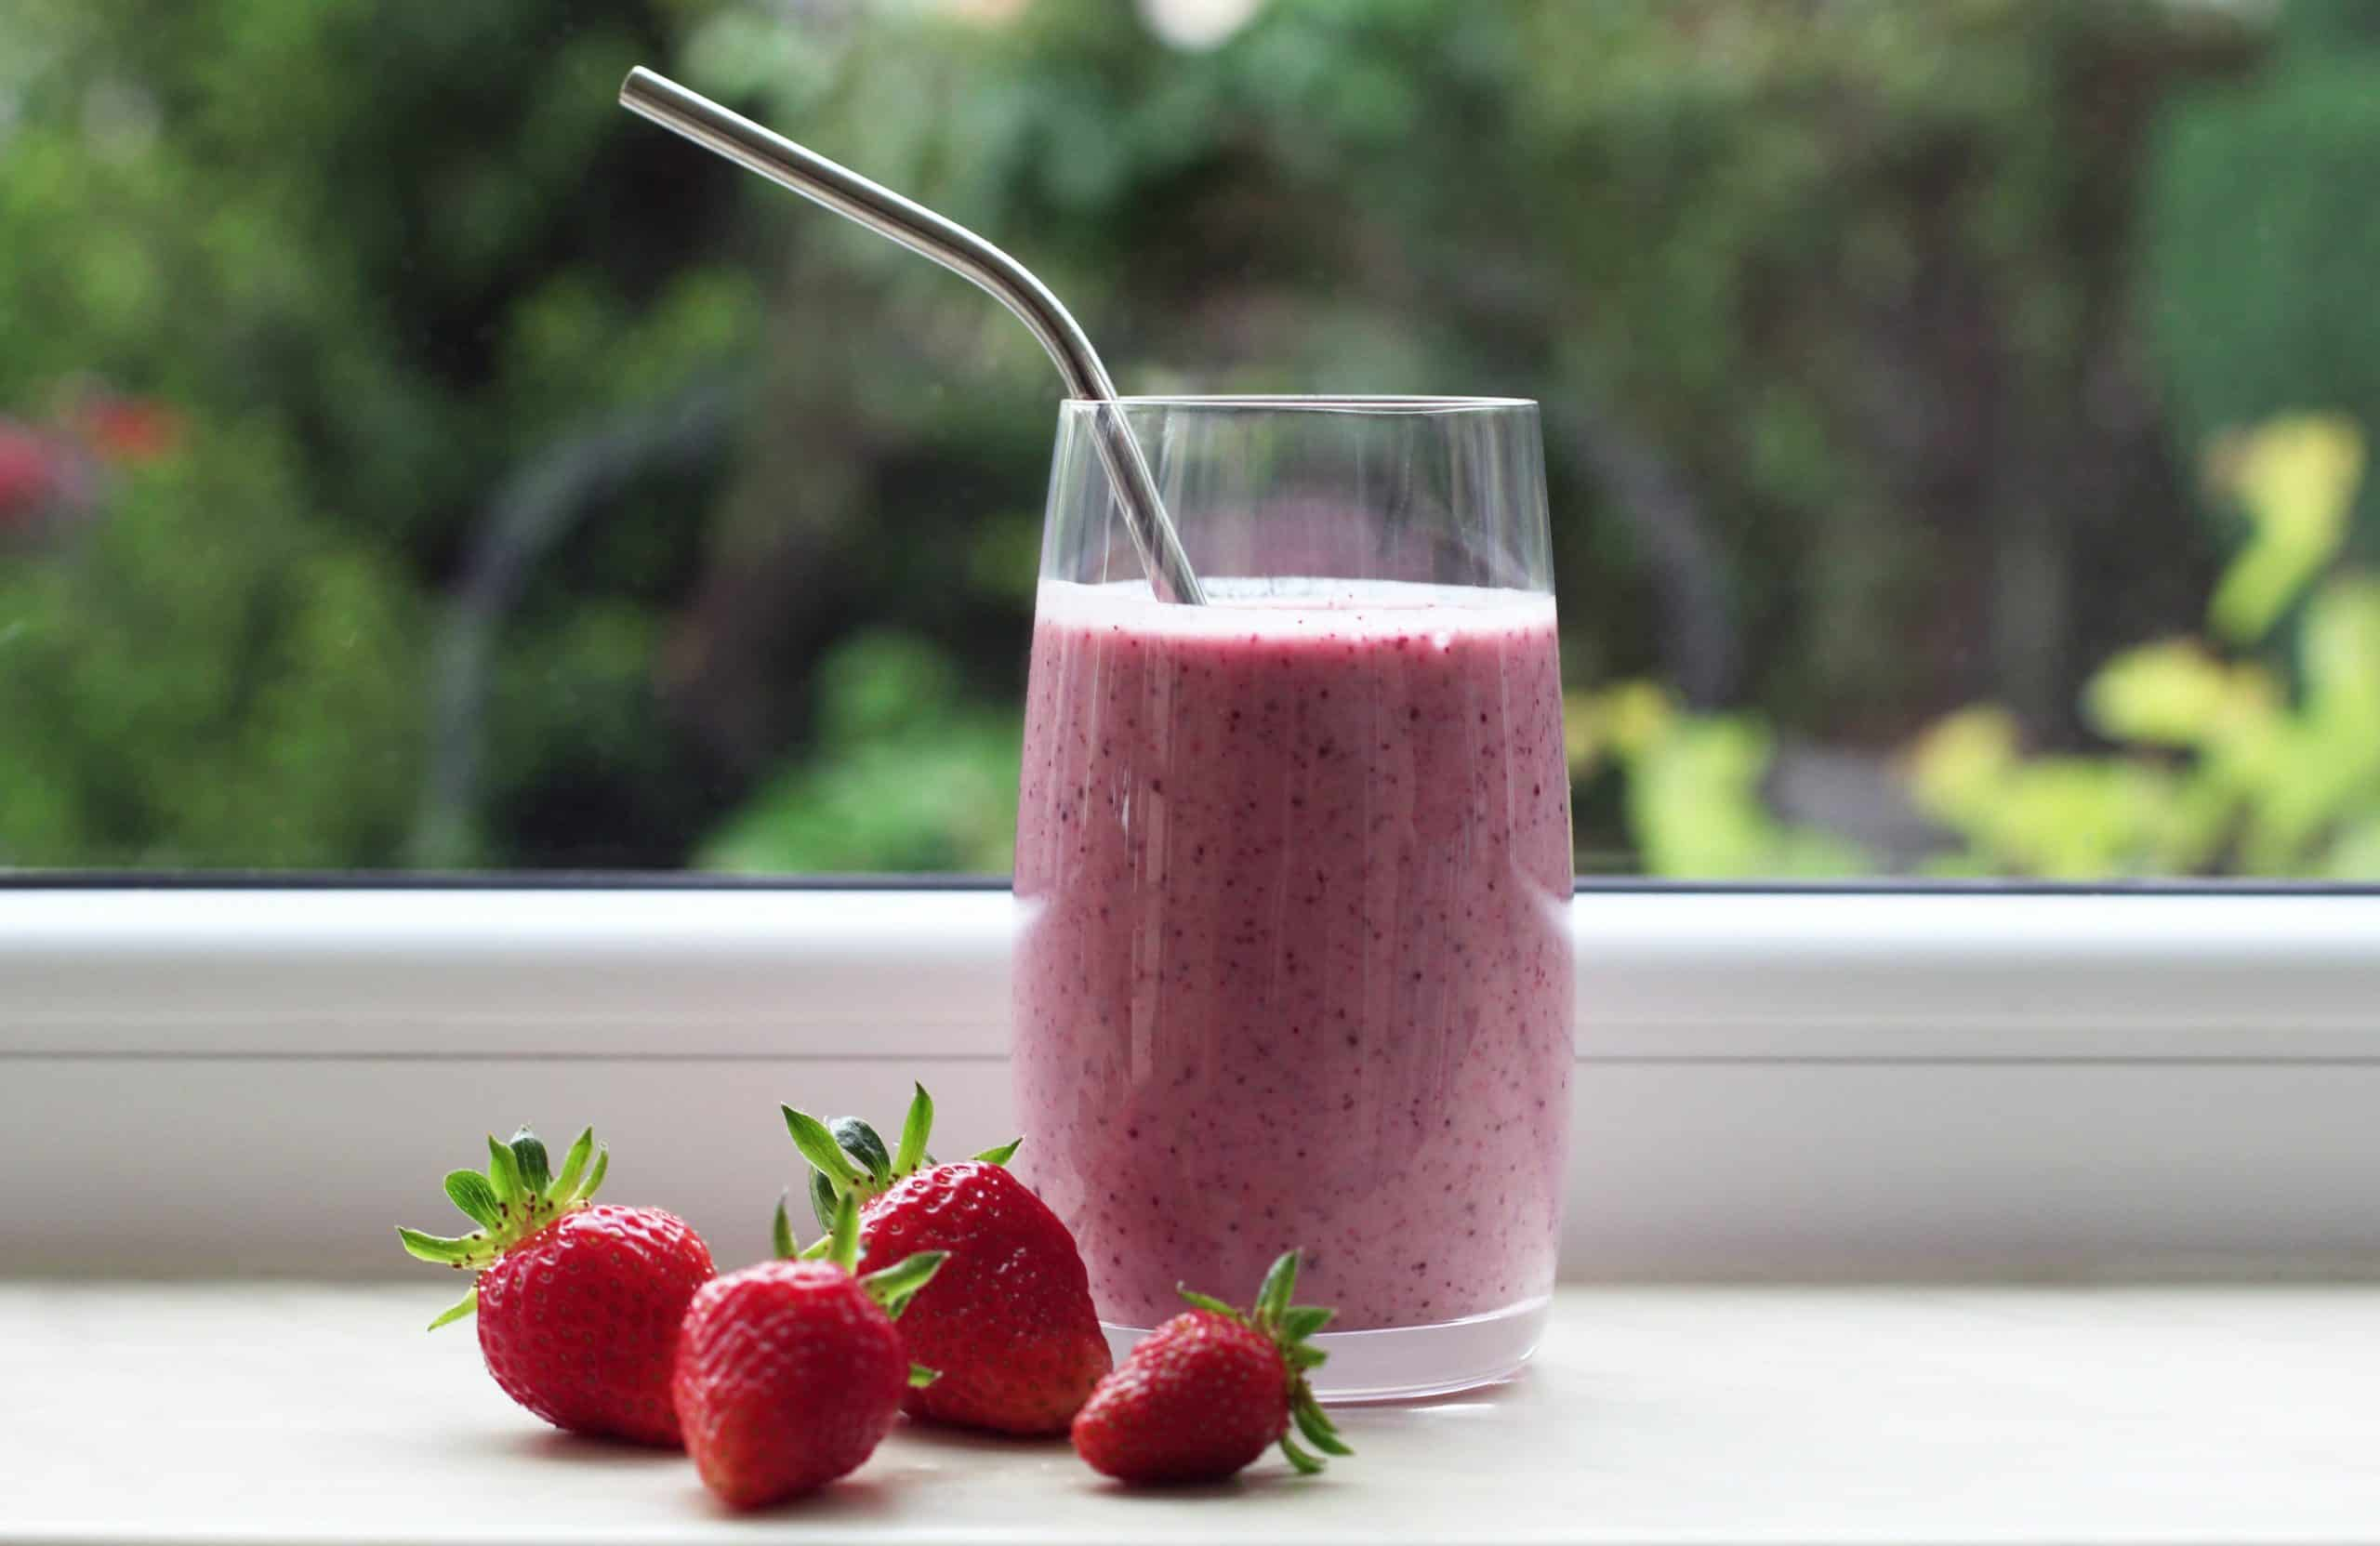 DIY smoothie recipes - Glass with pink smoothie surrounded by fresh strawberries, set by window looking out onto greenery